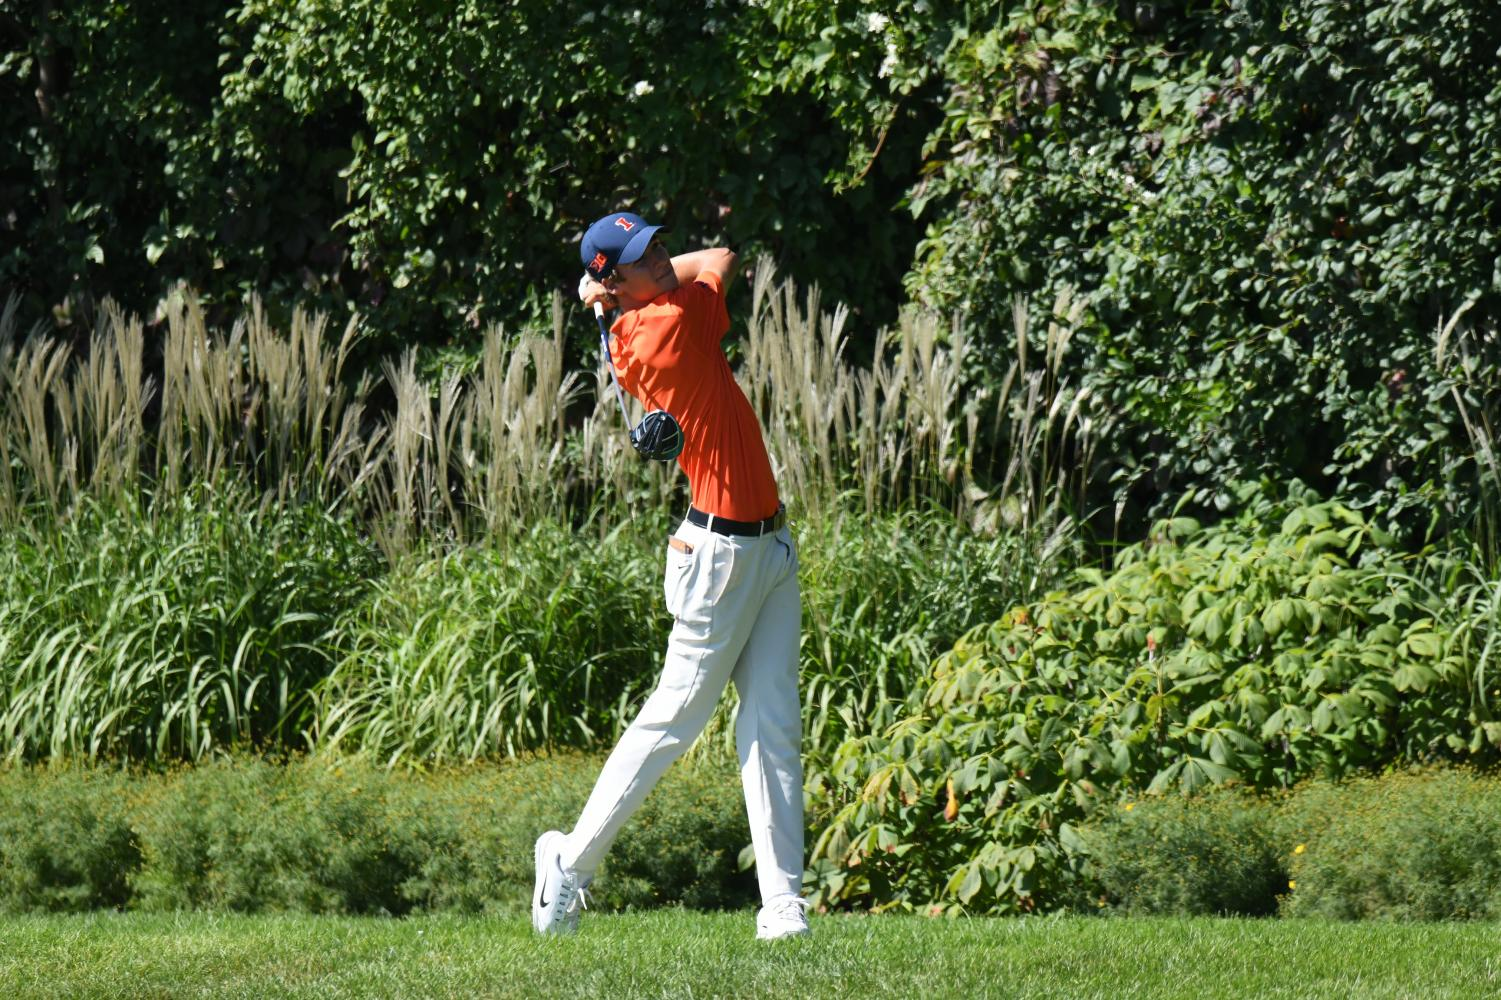 Illinois men's golf freshman Adrien Dumont de Chassart competes at the OFCC/FI Invitational in Olympia Fields, Illinois. Dumont de Chassart has been an impact performer on the team early this season, helping to make up for the loss of some prominent seniors after last season.